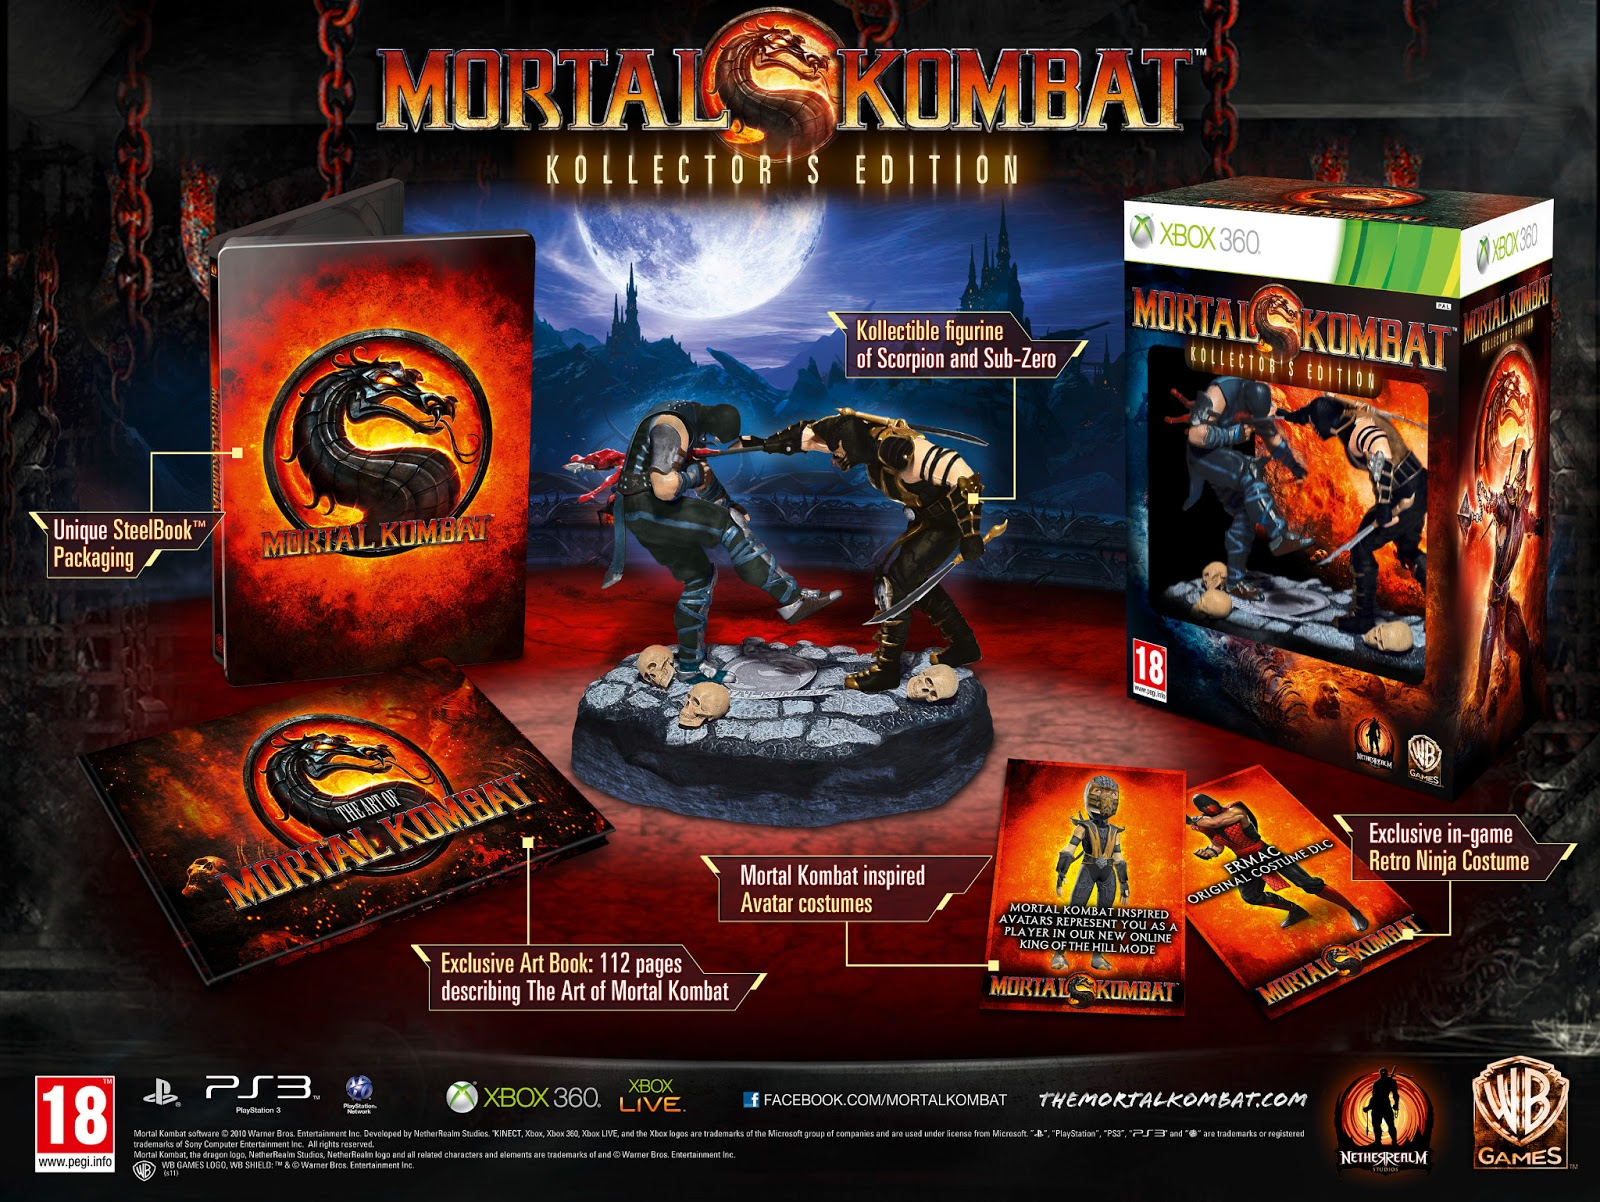 Mortal kombat 9 dlc characters free download ps3 makeplanner81.